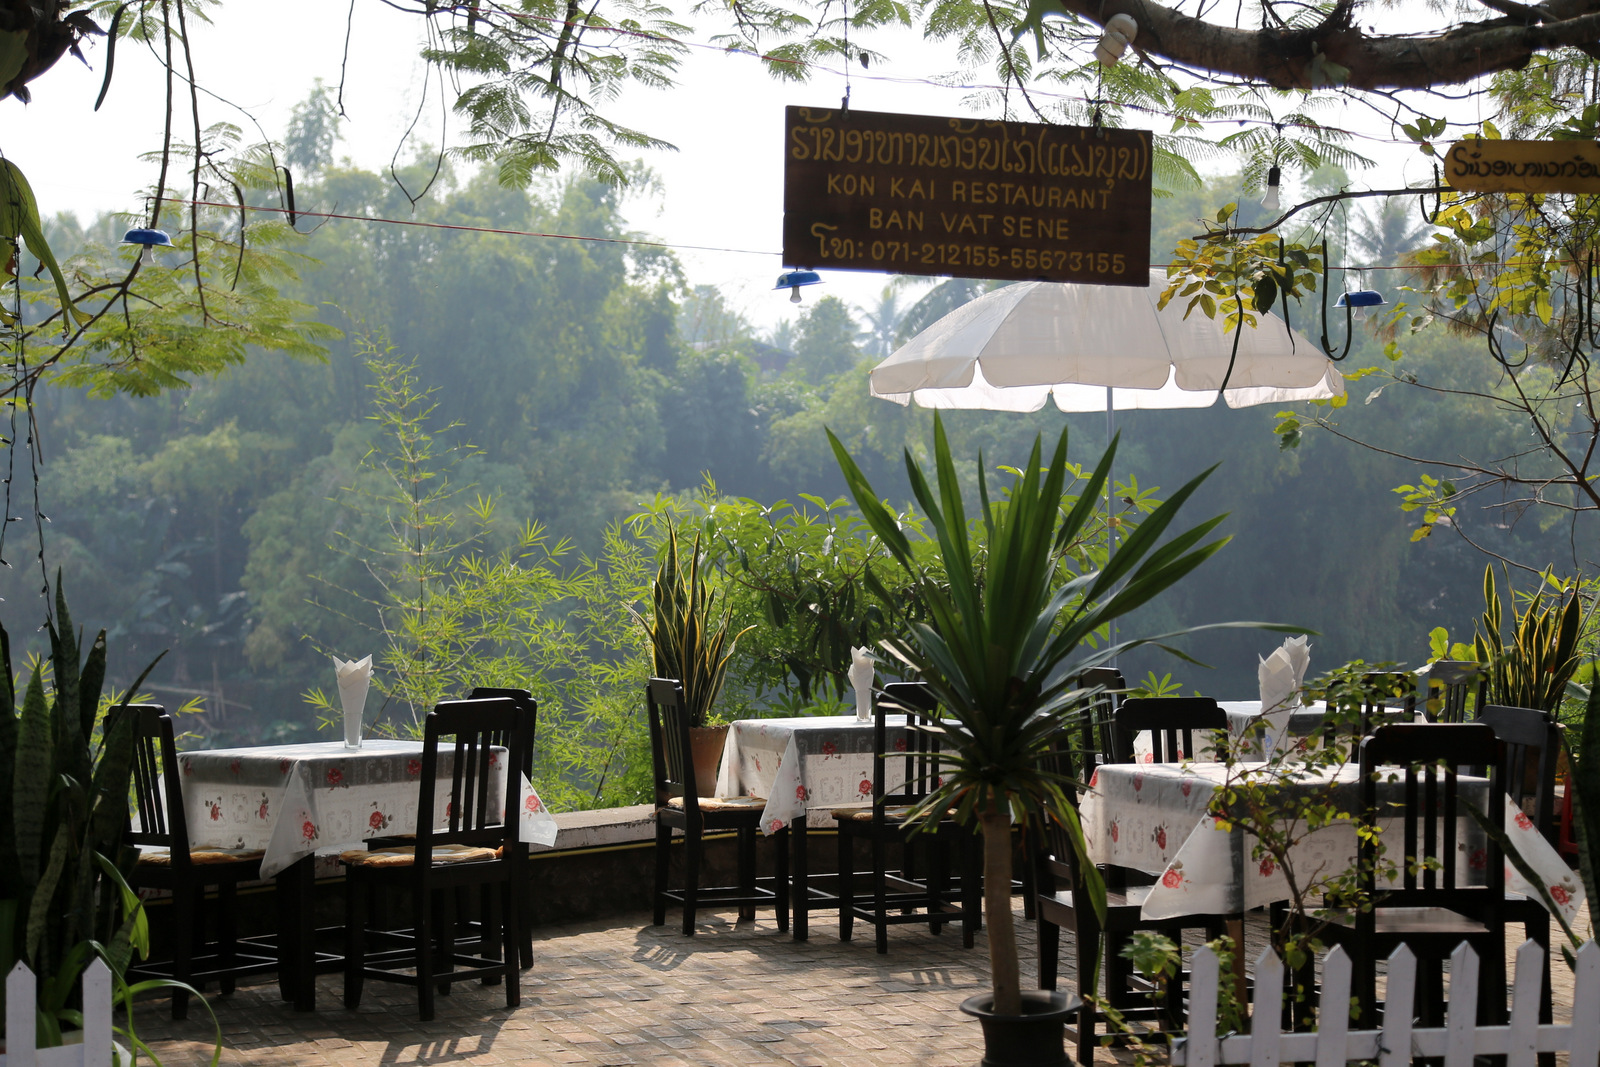 Luang Prabang - We had a very tasty lunch at this riverside restaurant